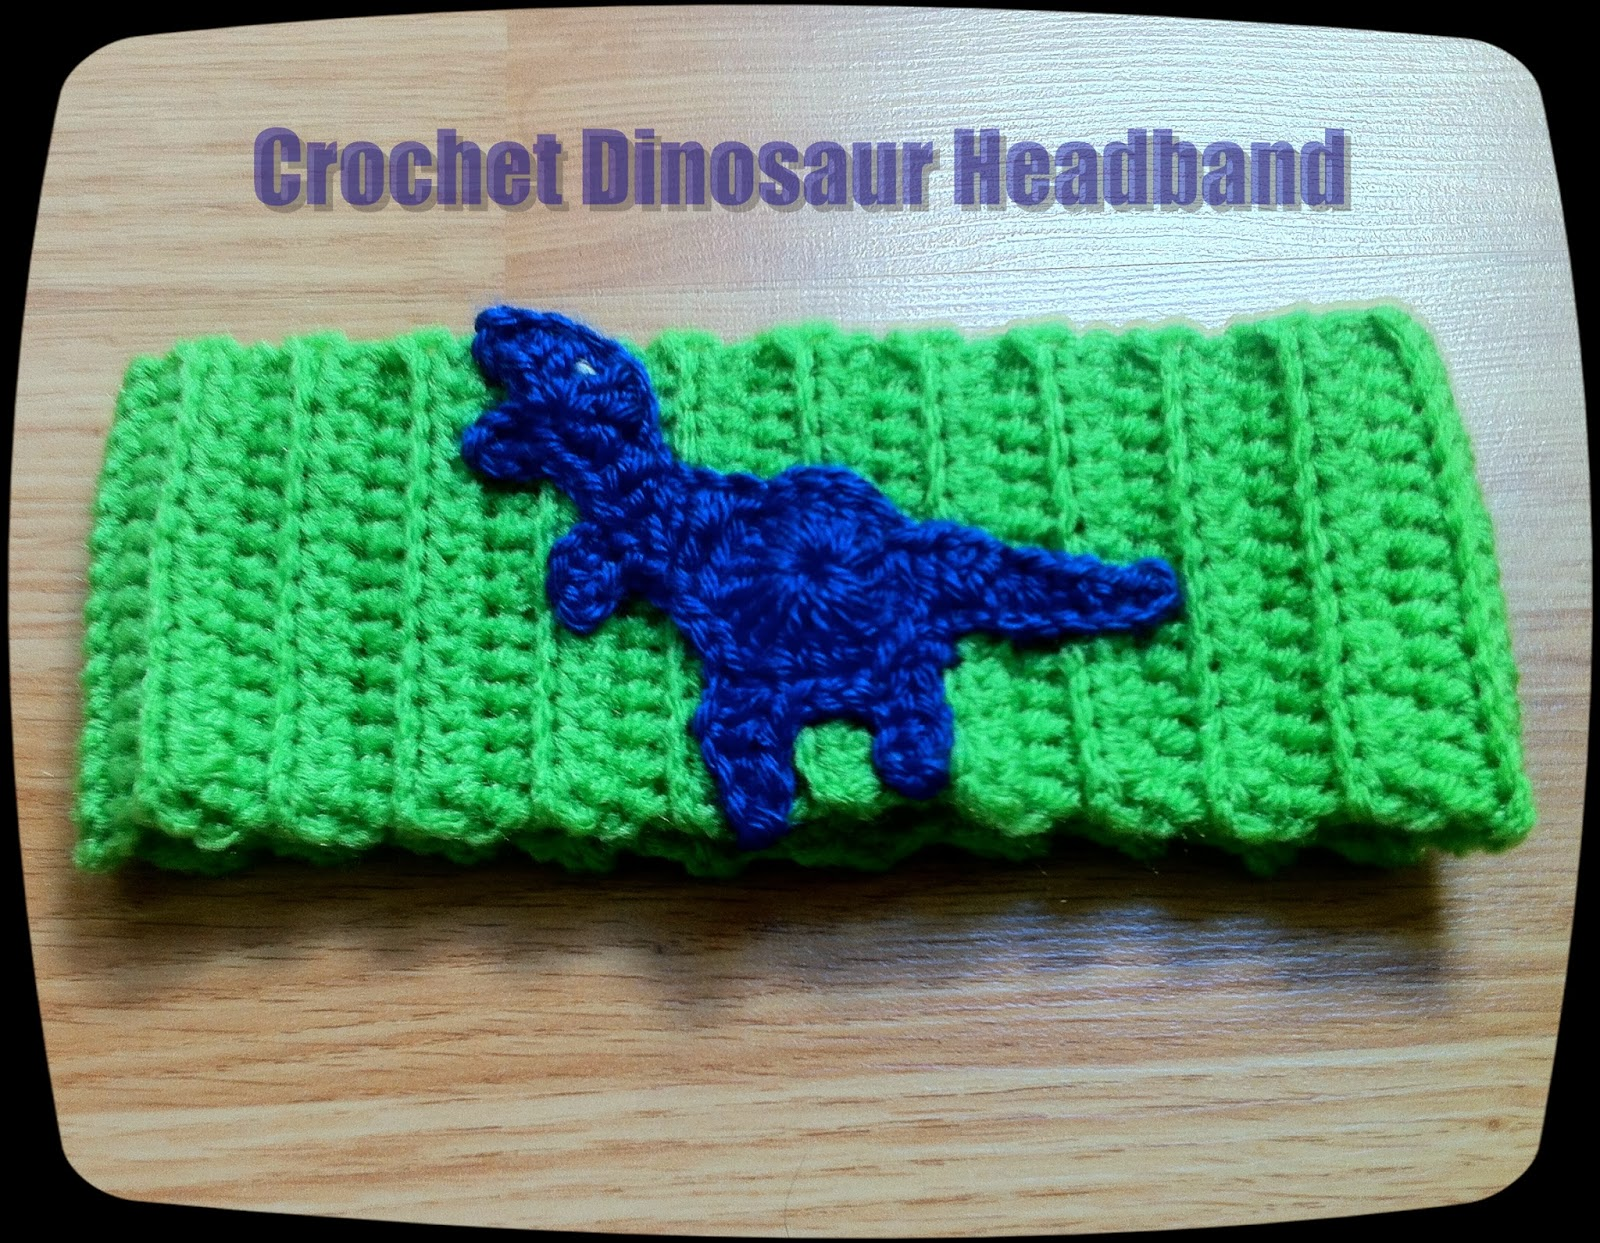 Dinosaur Headband | The Way I Crochet